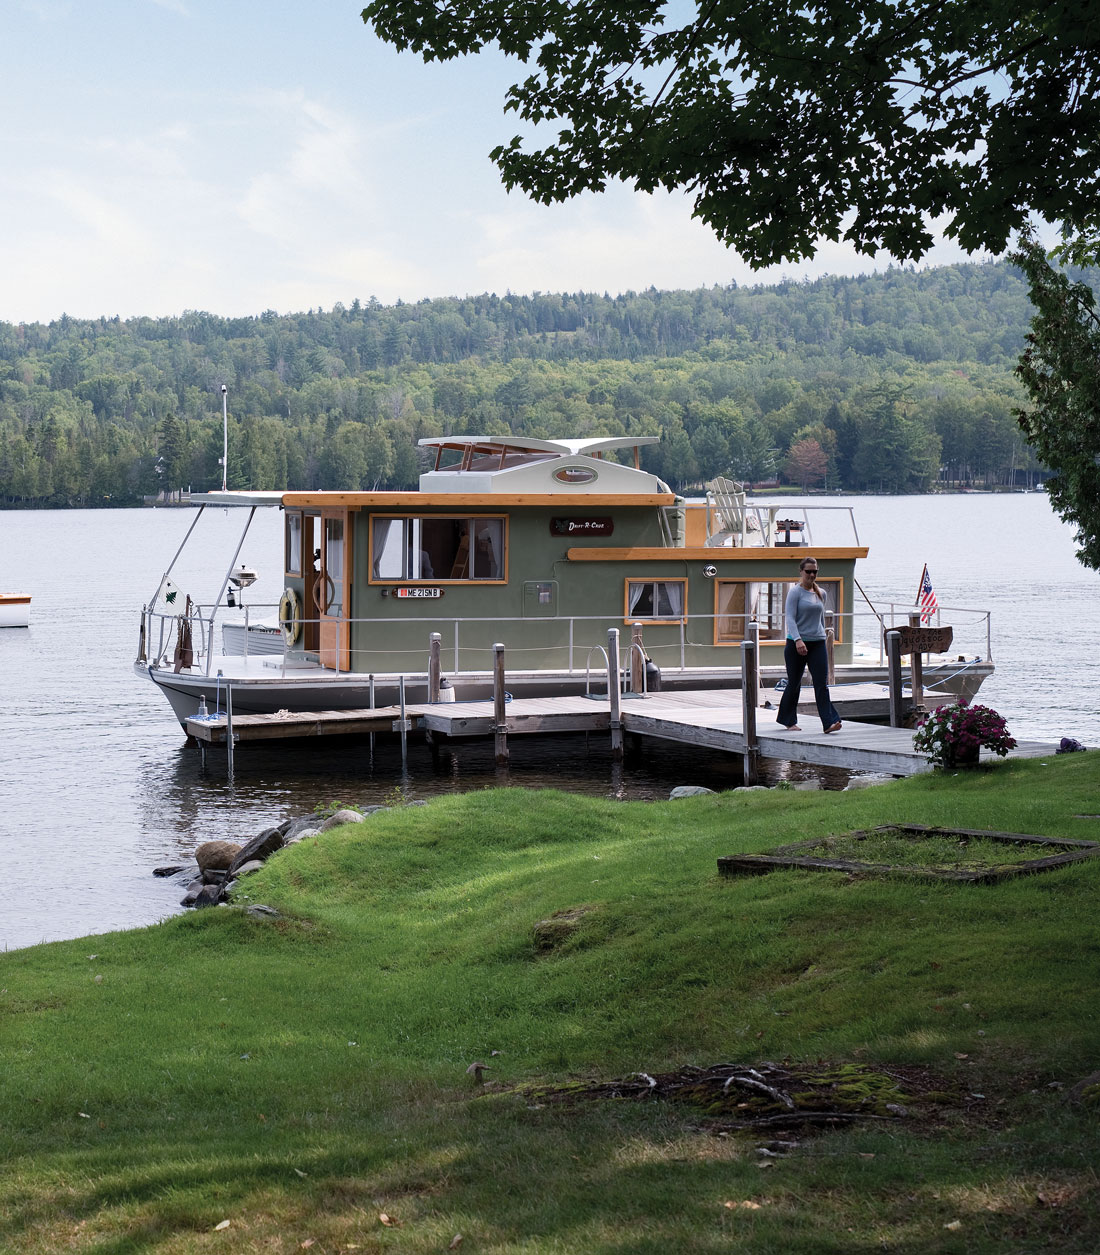 Peachy A Houseboat On Rangeley Lake Home Floats Maine Homes Download Free Architecture Designs Intelgarnamadebymaigaardcom